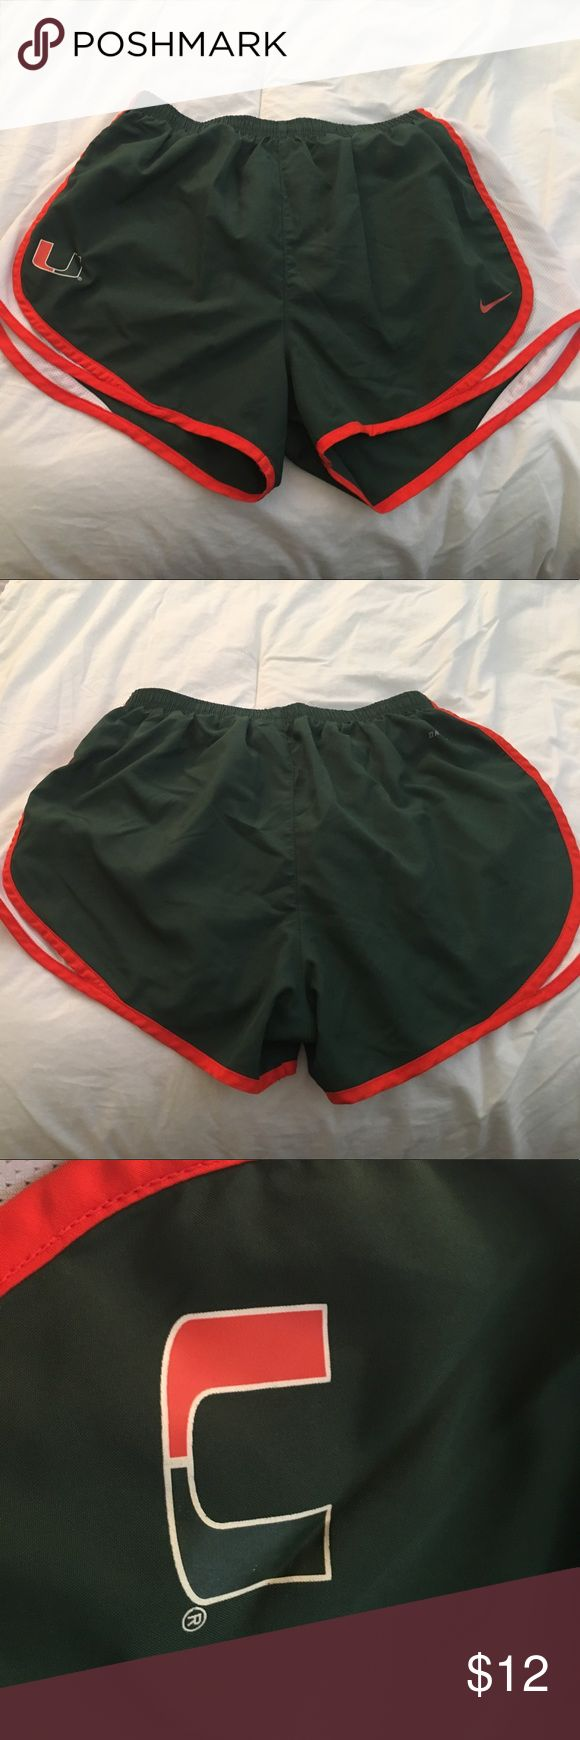 Nike Dri-Fit University of Miami Running Shorts Nike Dri-Fit University of Miami Running Shorts, Size Medium, U of Miami logo on front left, Nike symbol on front right, built-in lining, elastic waist with drawstring to adjust, small pocket for keys and credit cards on front right (when wearing the shorts - see last photo) Nike Shorts